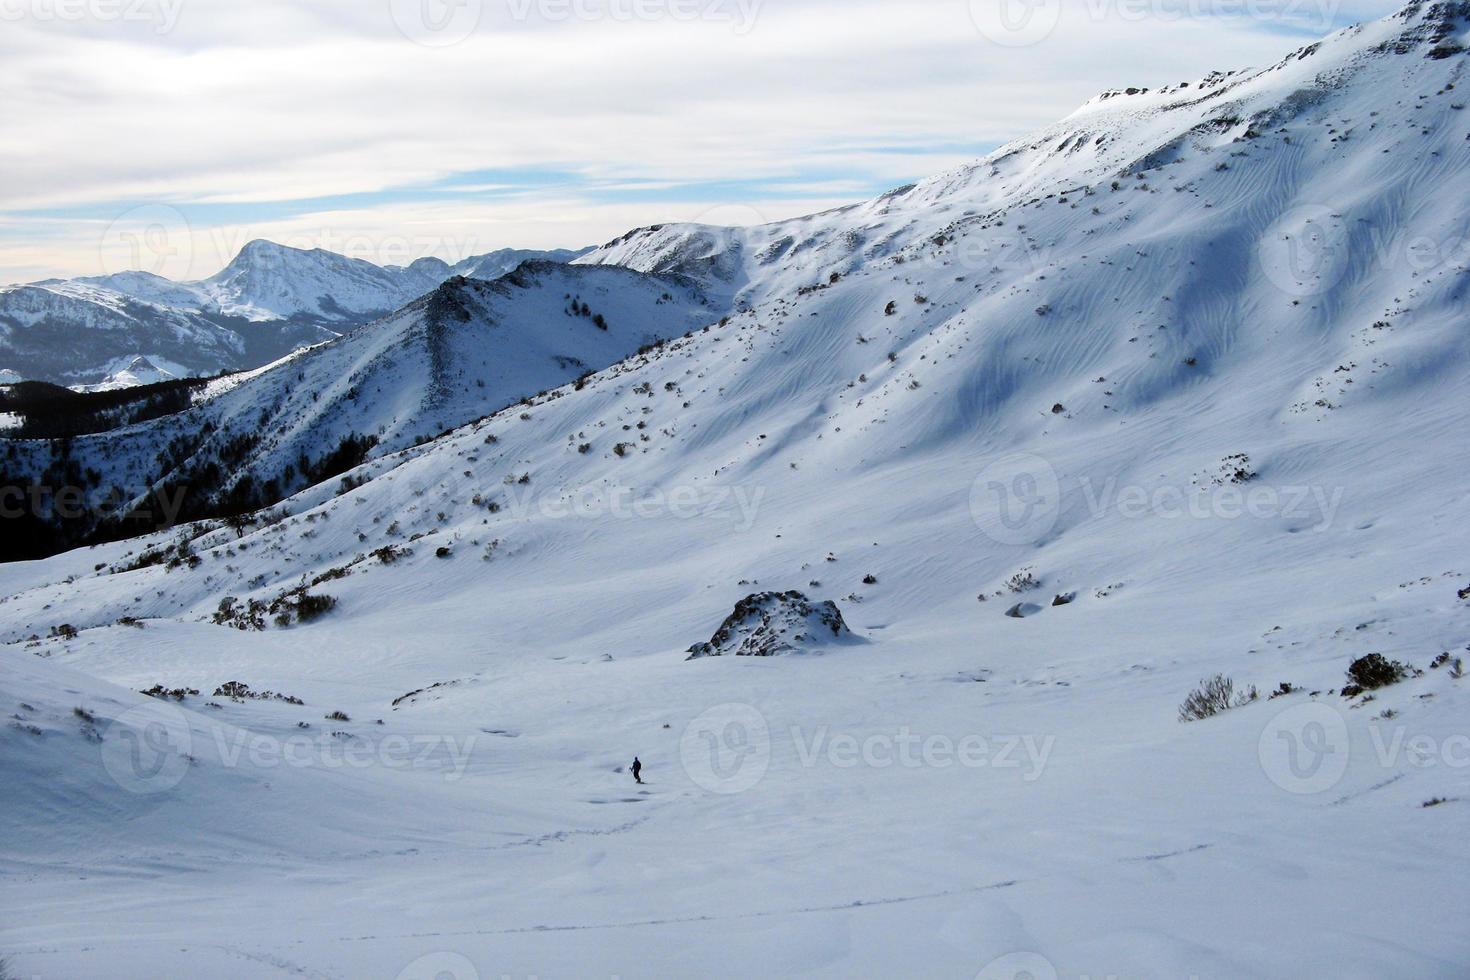 Mountains with snow in winter, photo